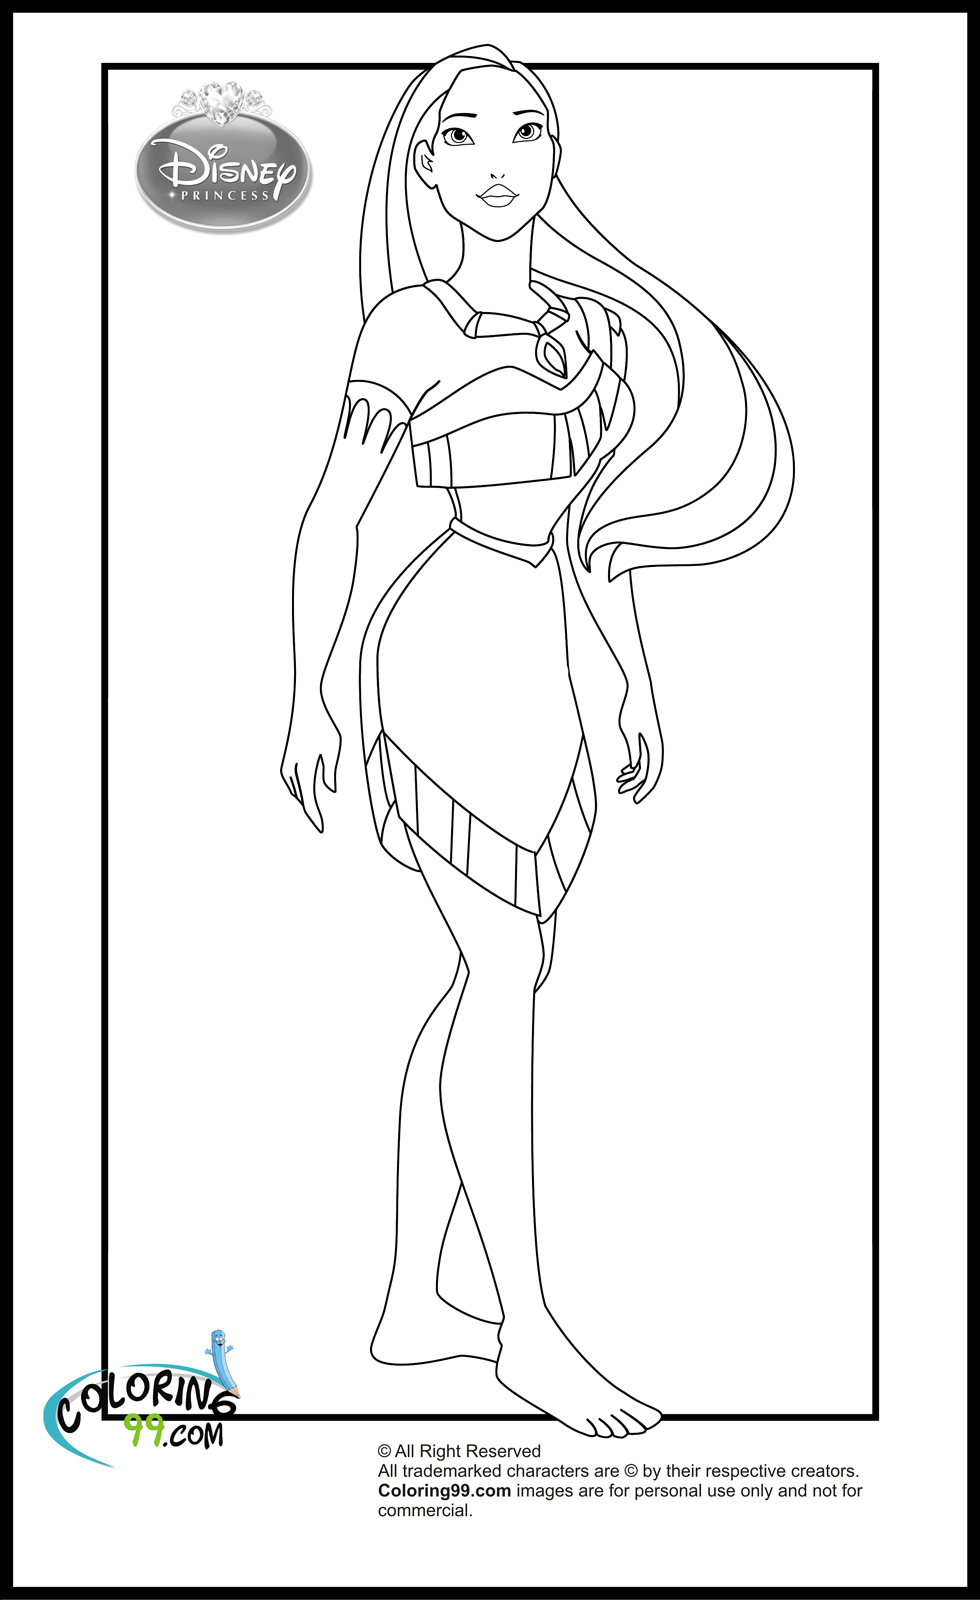 Disney Princess Coloring Pages | Minister Coloring | colouring pages for disney princesses